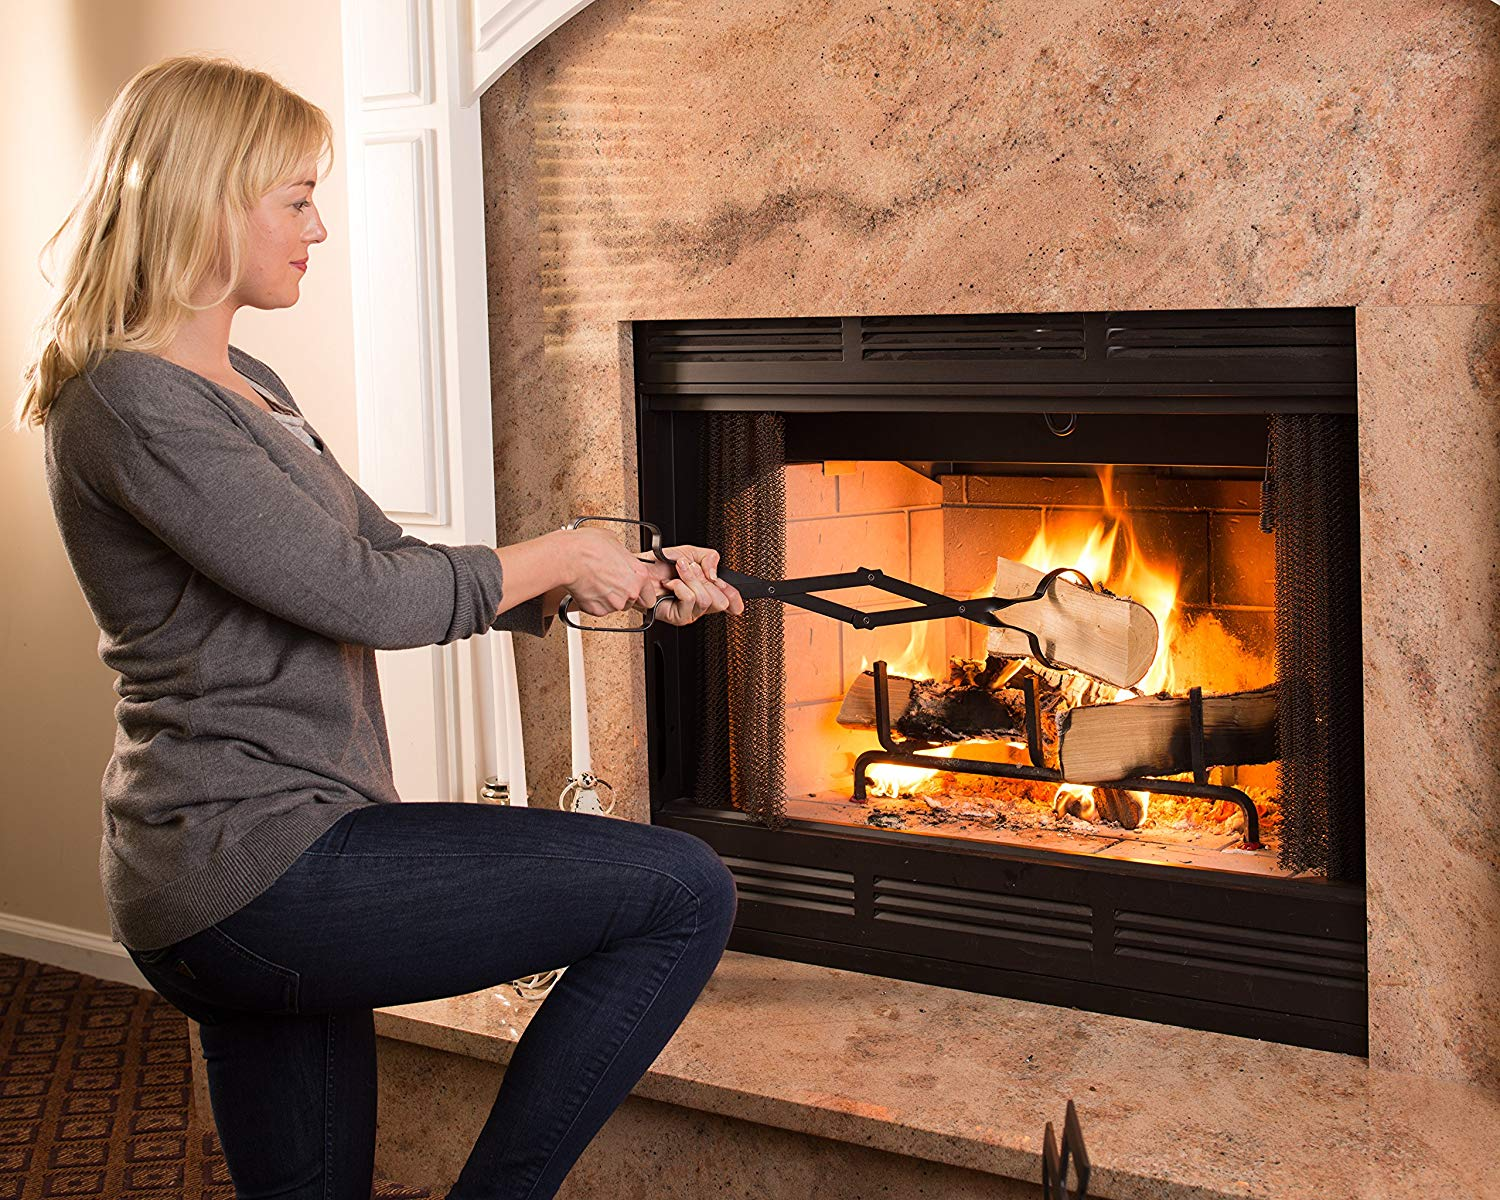 3 Essential Tools for the Home Hearth